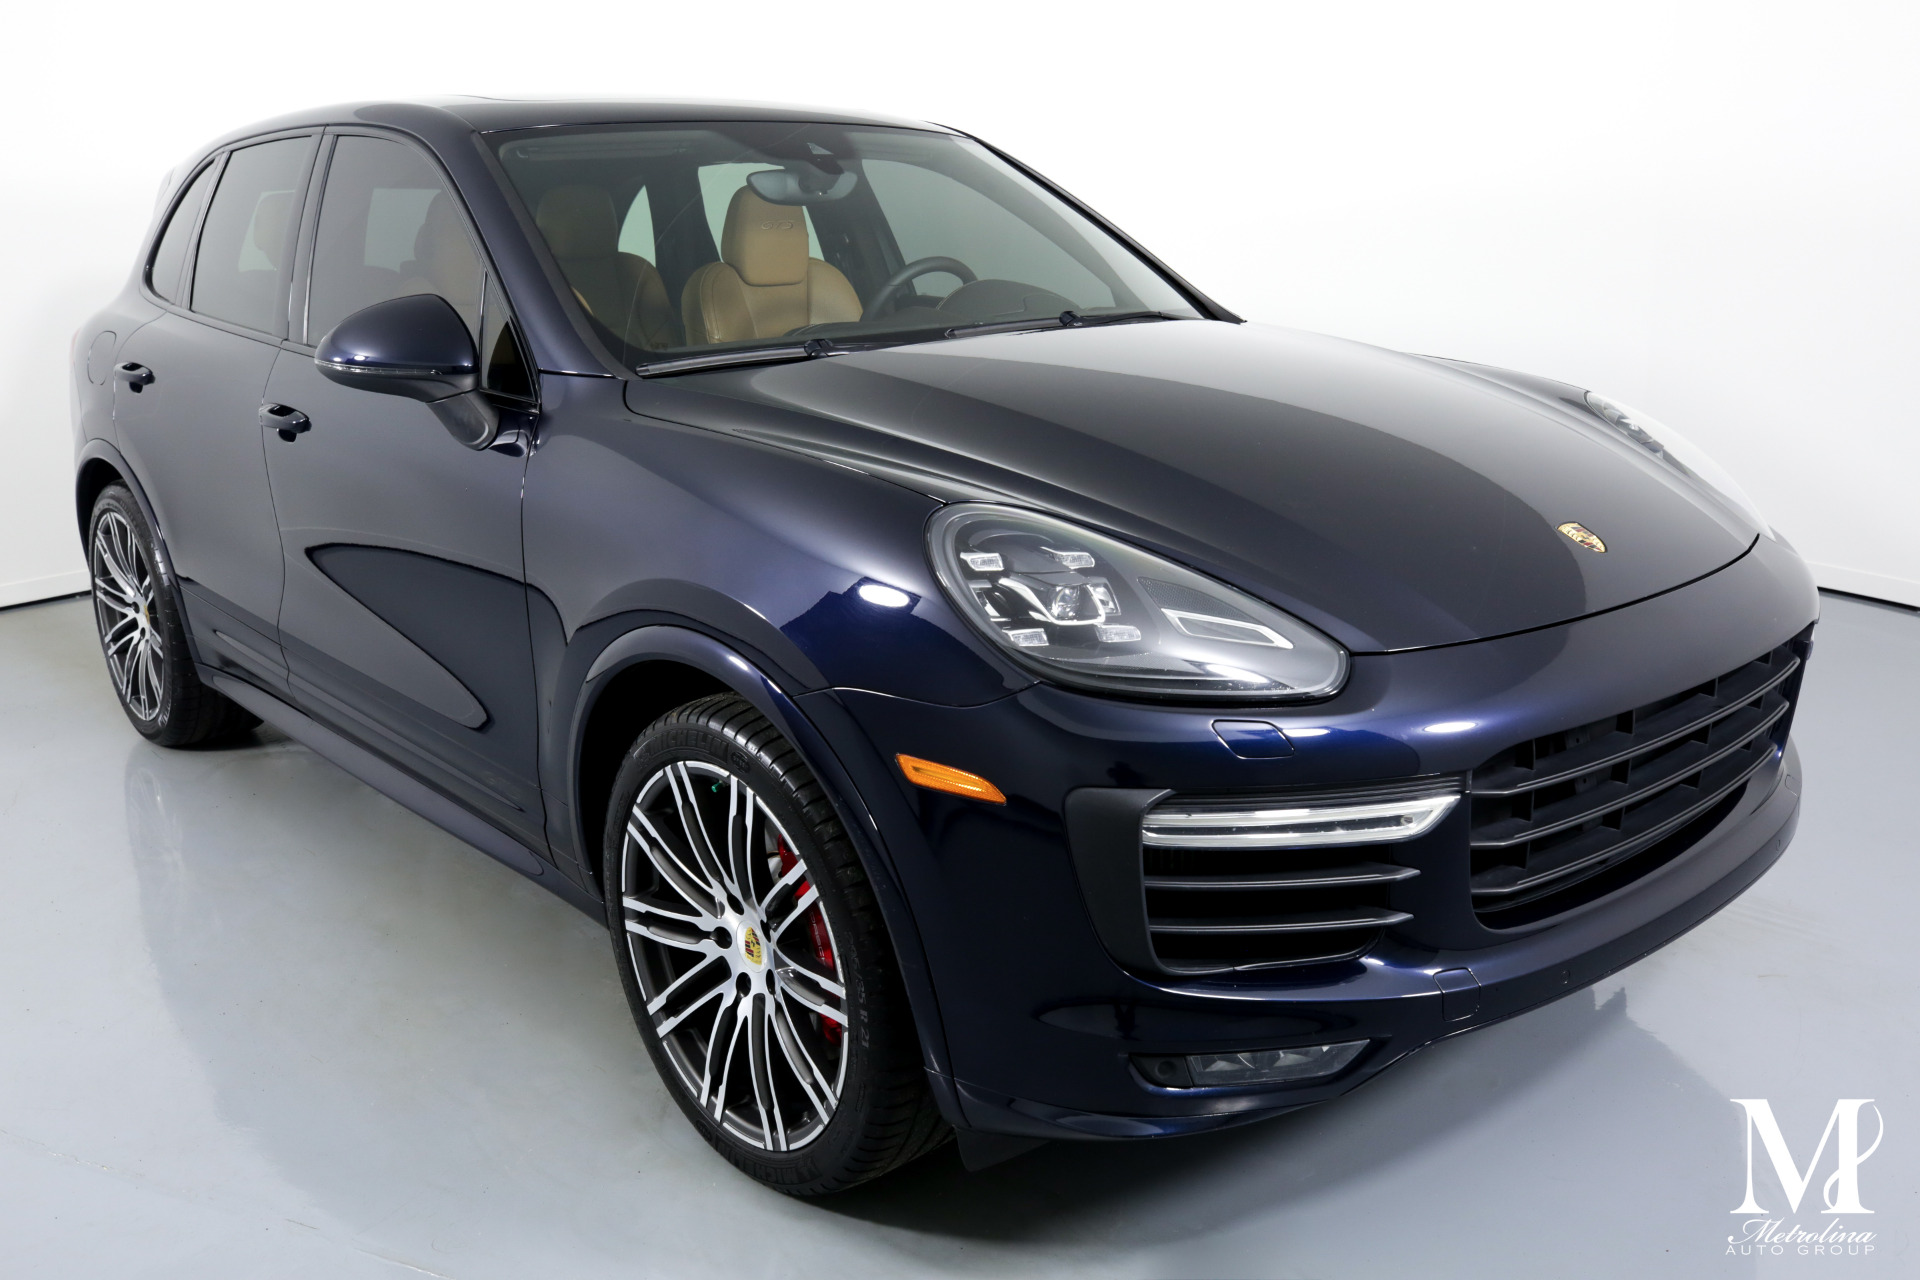 Used 2016 Porsche Cayenne GTS for sale $42,996 at Metrolina Auto Group in Charlotte NC 28217 - 2